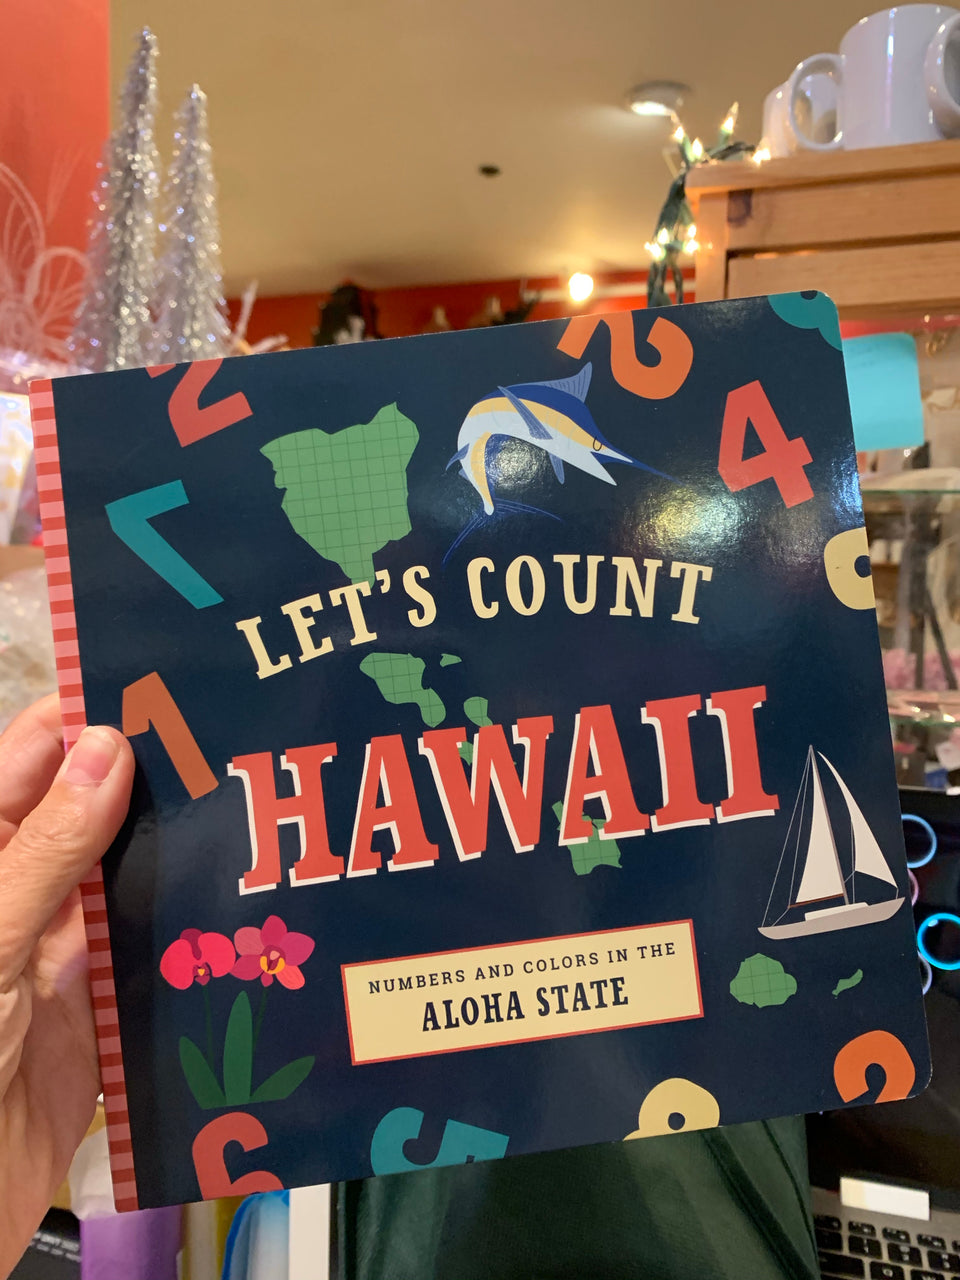 Alphabet and numbers in Hawai'ian